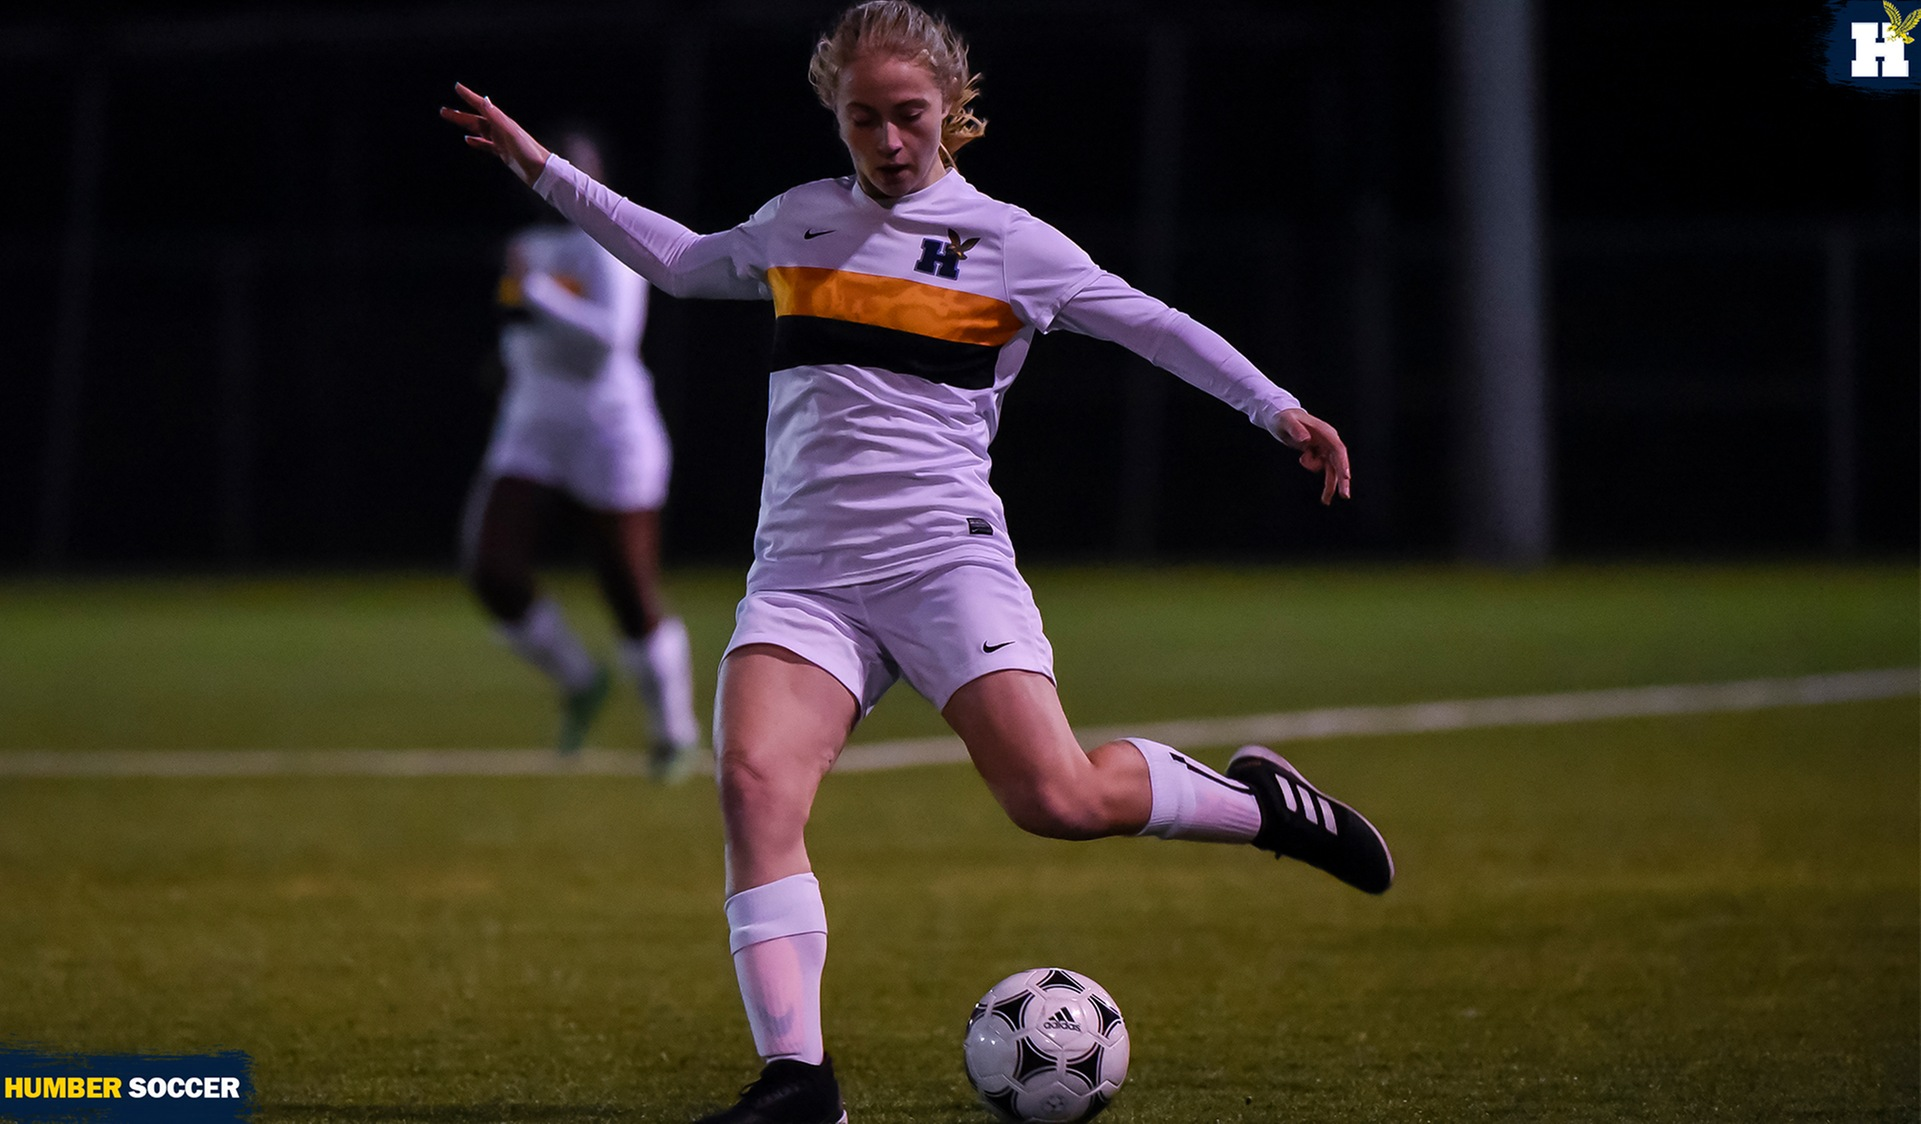 No. 4 WOMEN'S SOCCER FALL TO FANSHAWE IN PROVINCIAL CHAMPIONSHIP